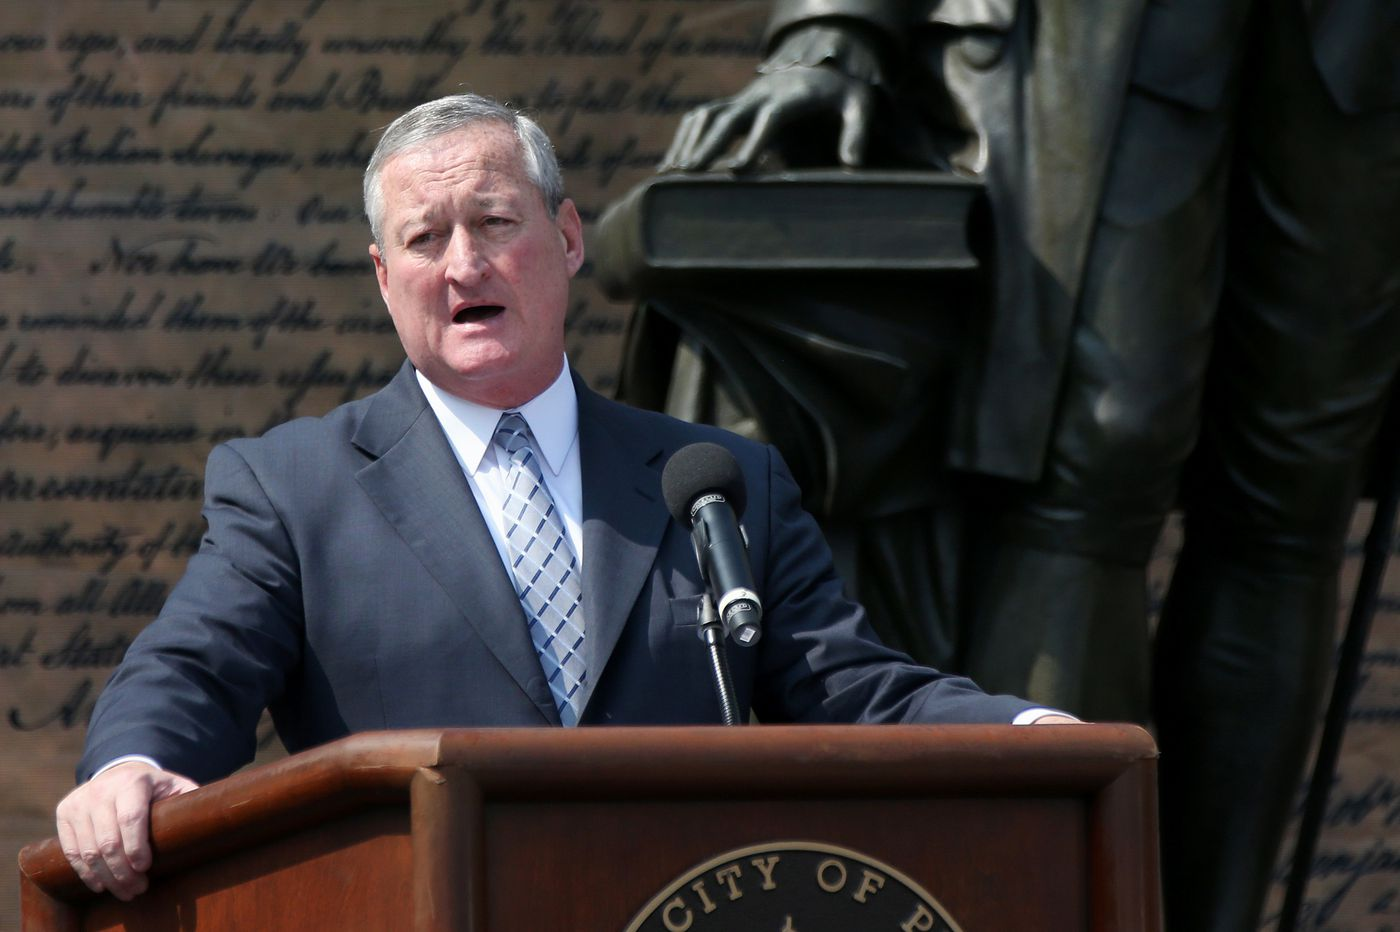 Mayor Kenney won't renew Philadelphia's data-sharing contract with ICE